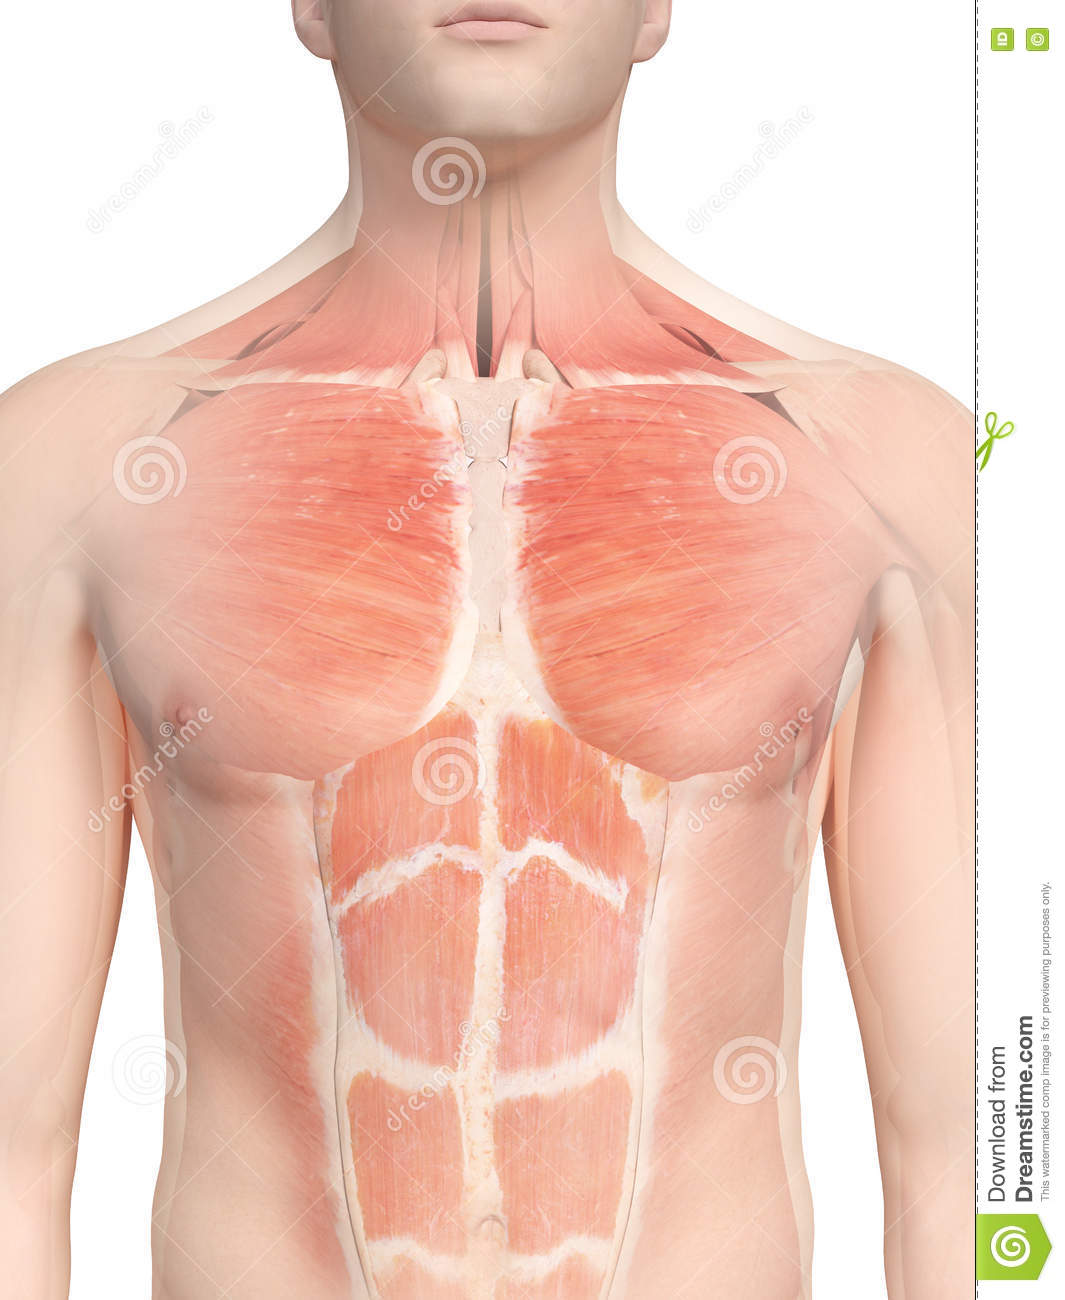 The Chest Muscles Stock Illustration Illustration Of Glass 75188765